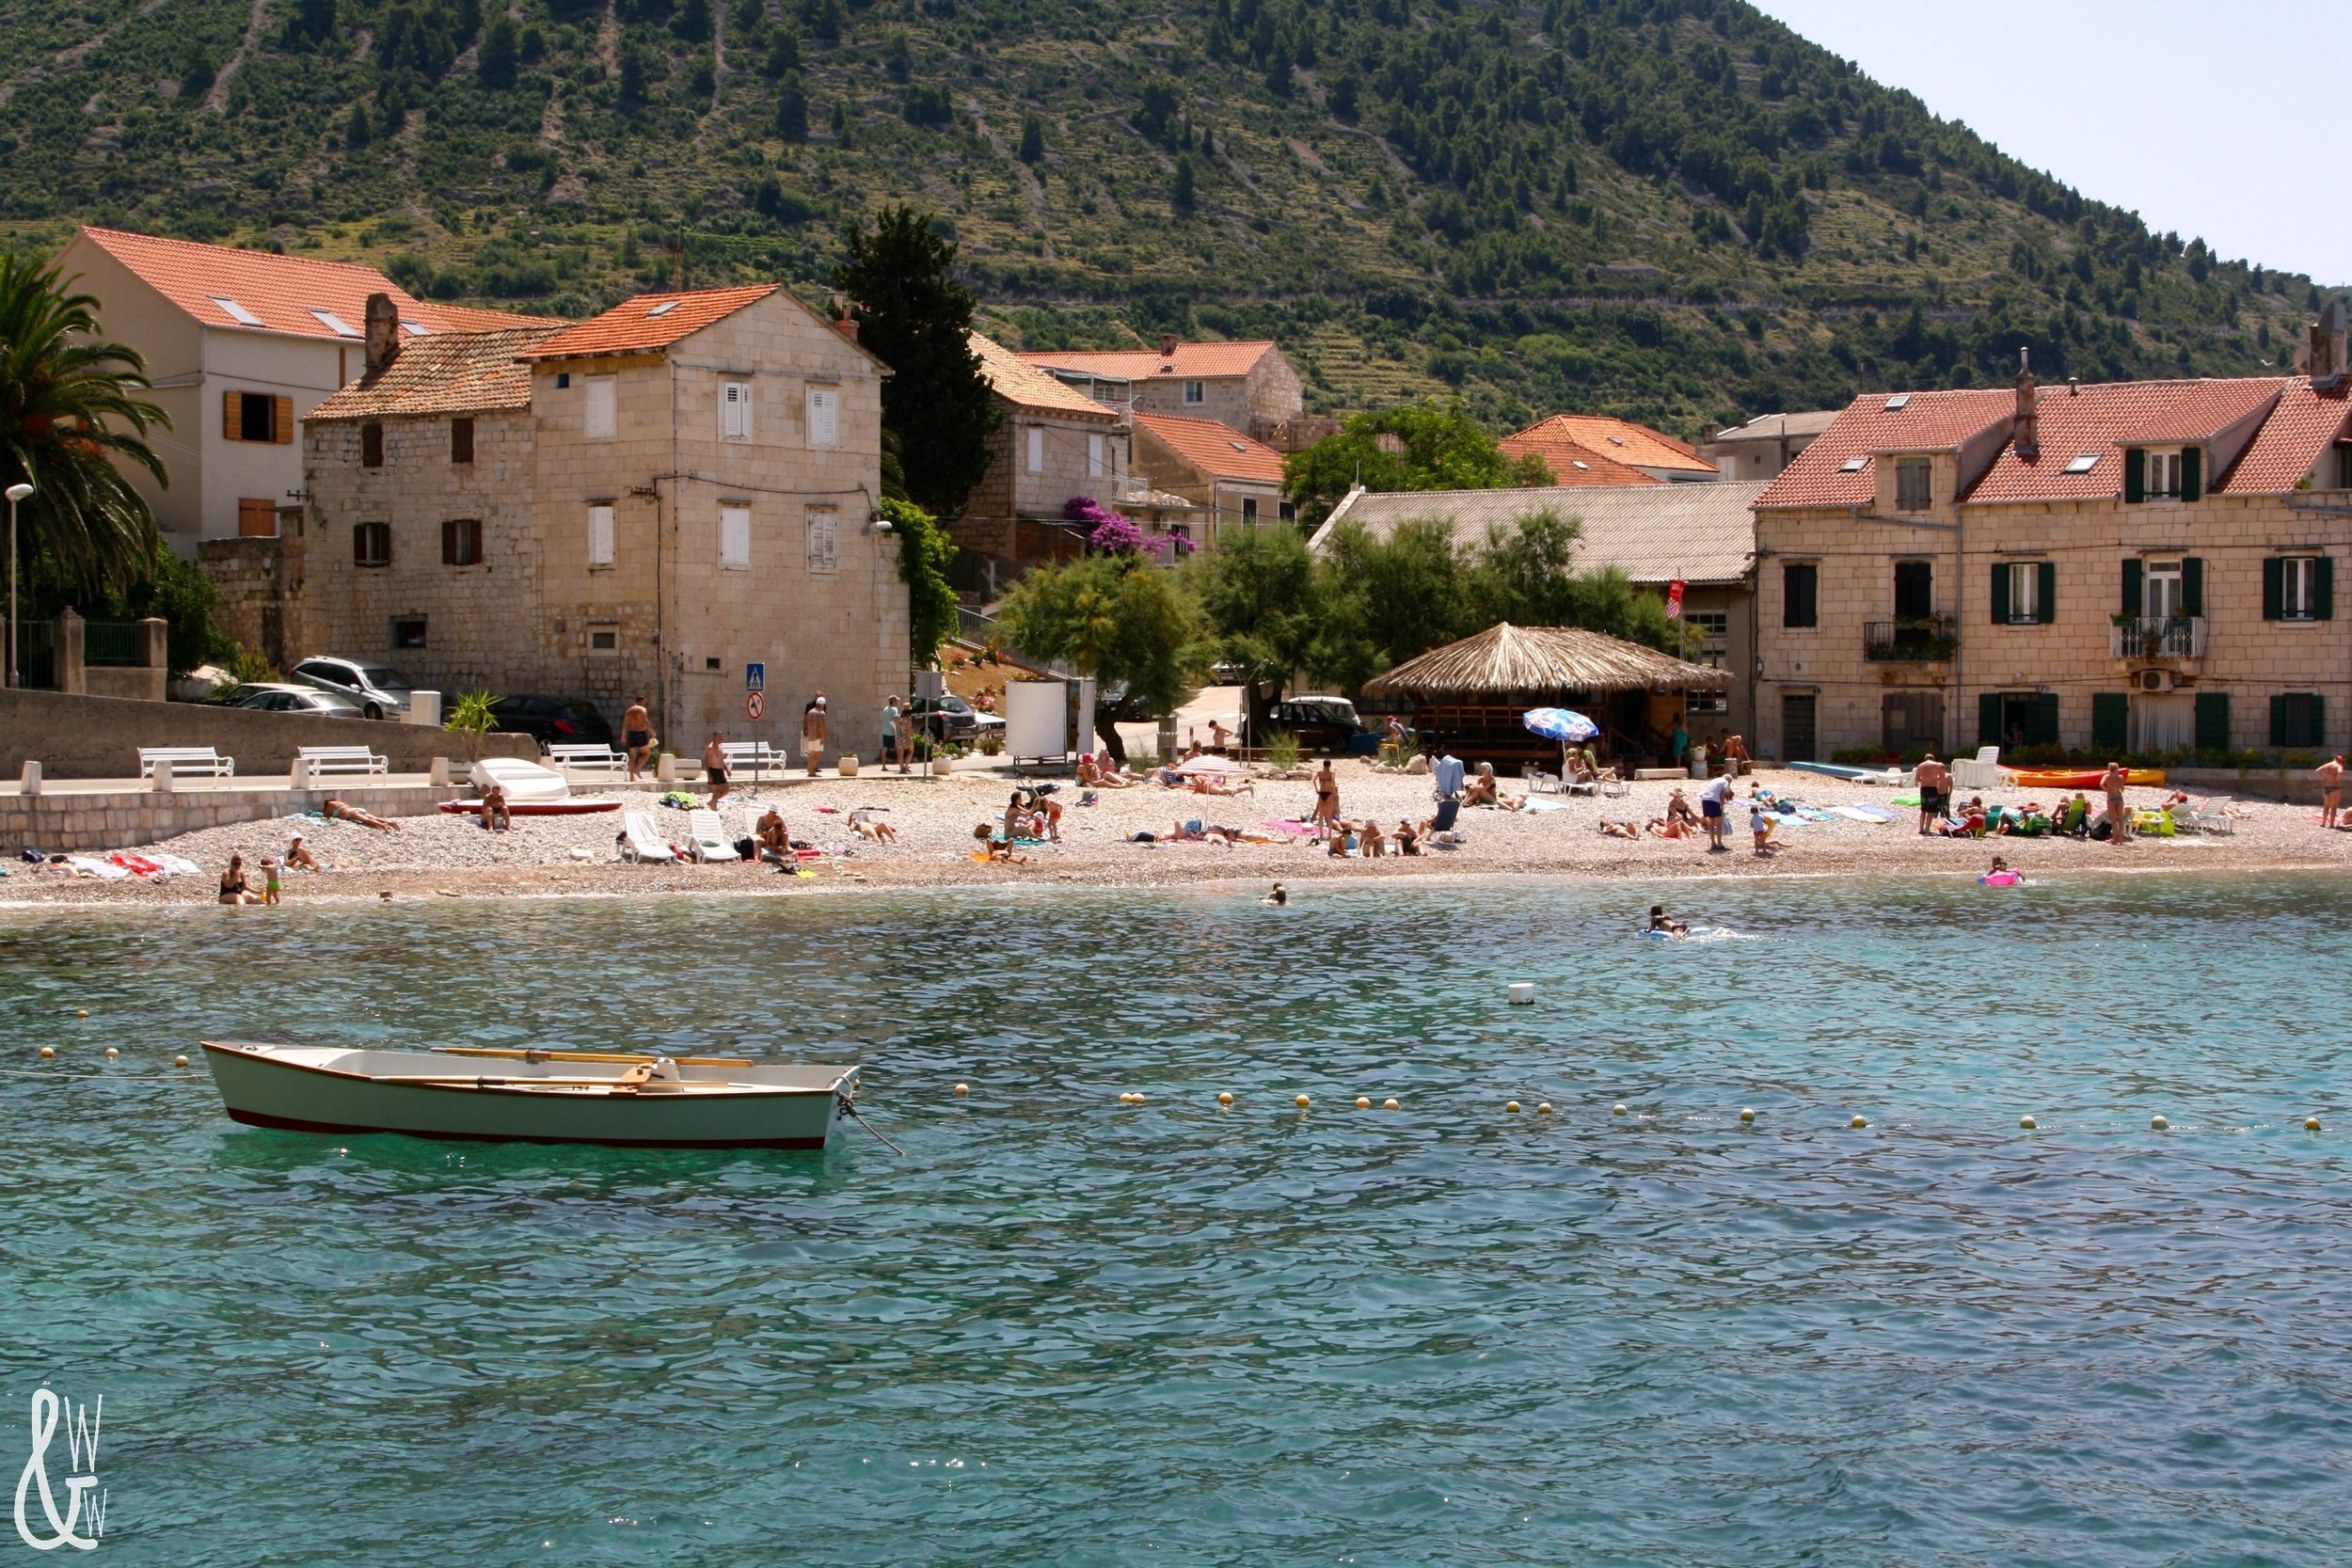 Read about our favorite sights, bites & nights on the island of Vis, Croatia!